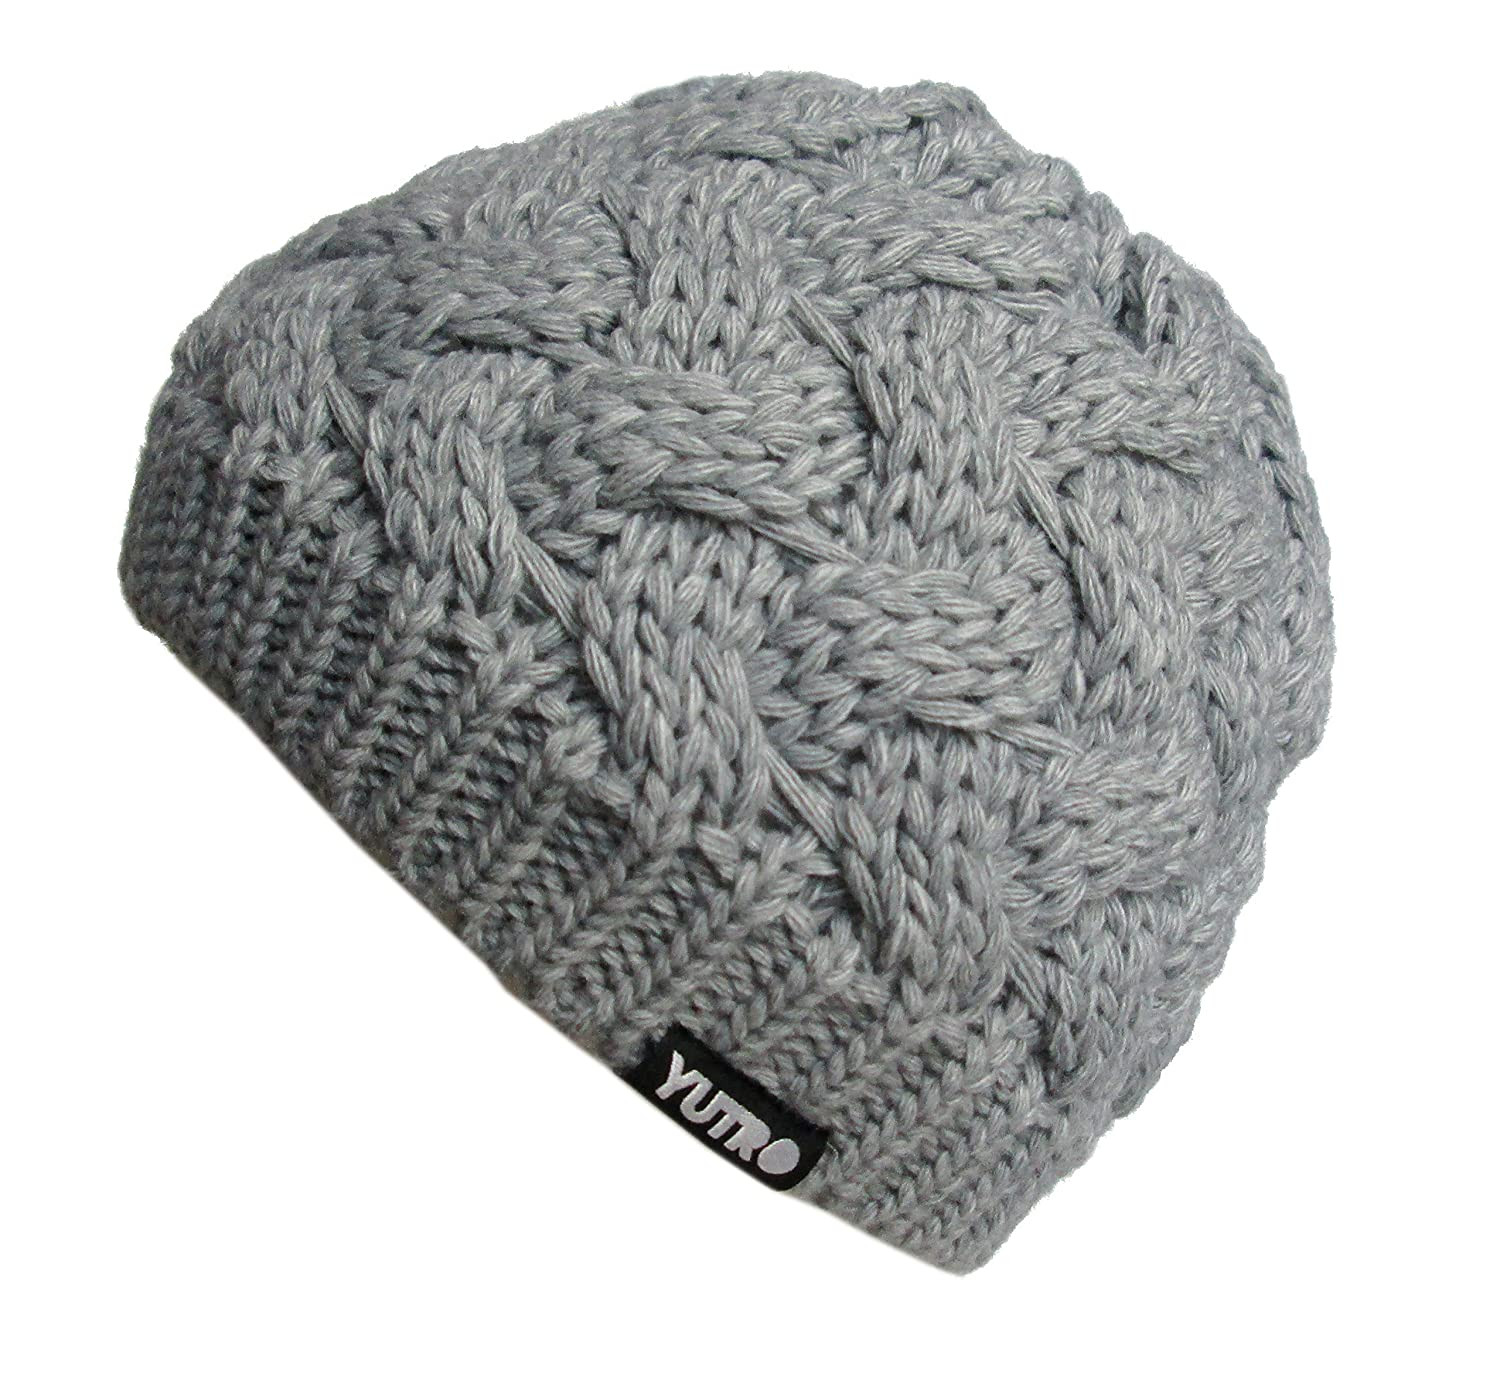 YUTRO Fashion Womens Winter Classic Cable Wool Knitted Beanie Hat